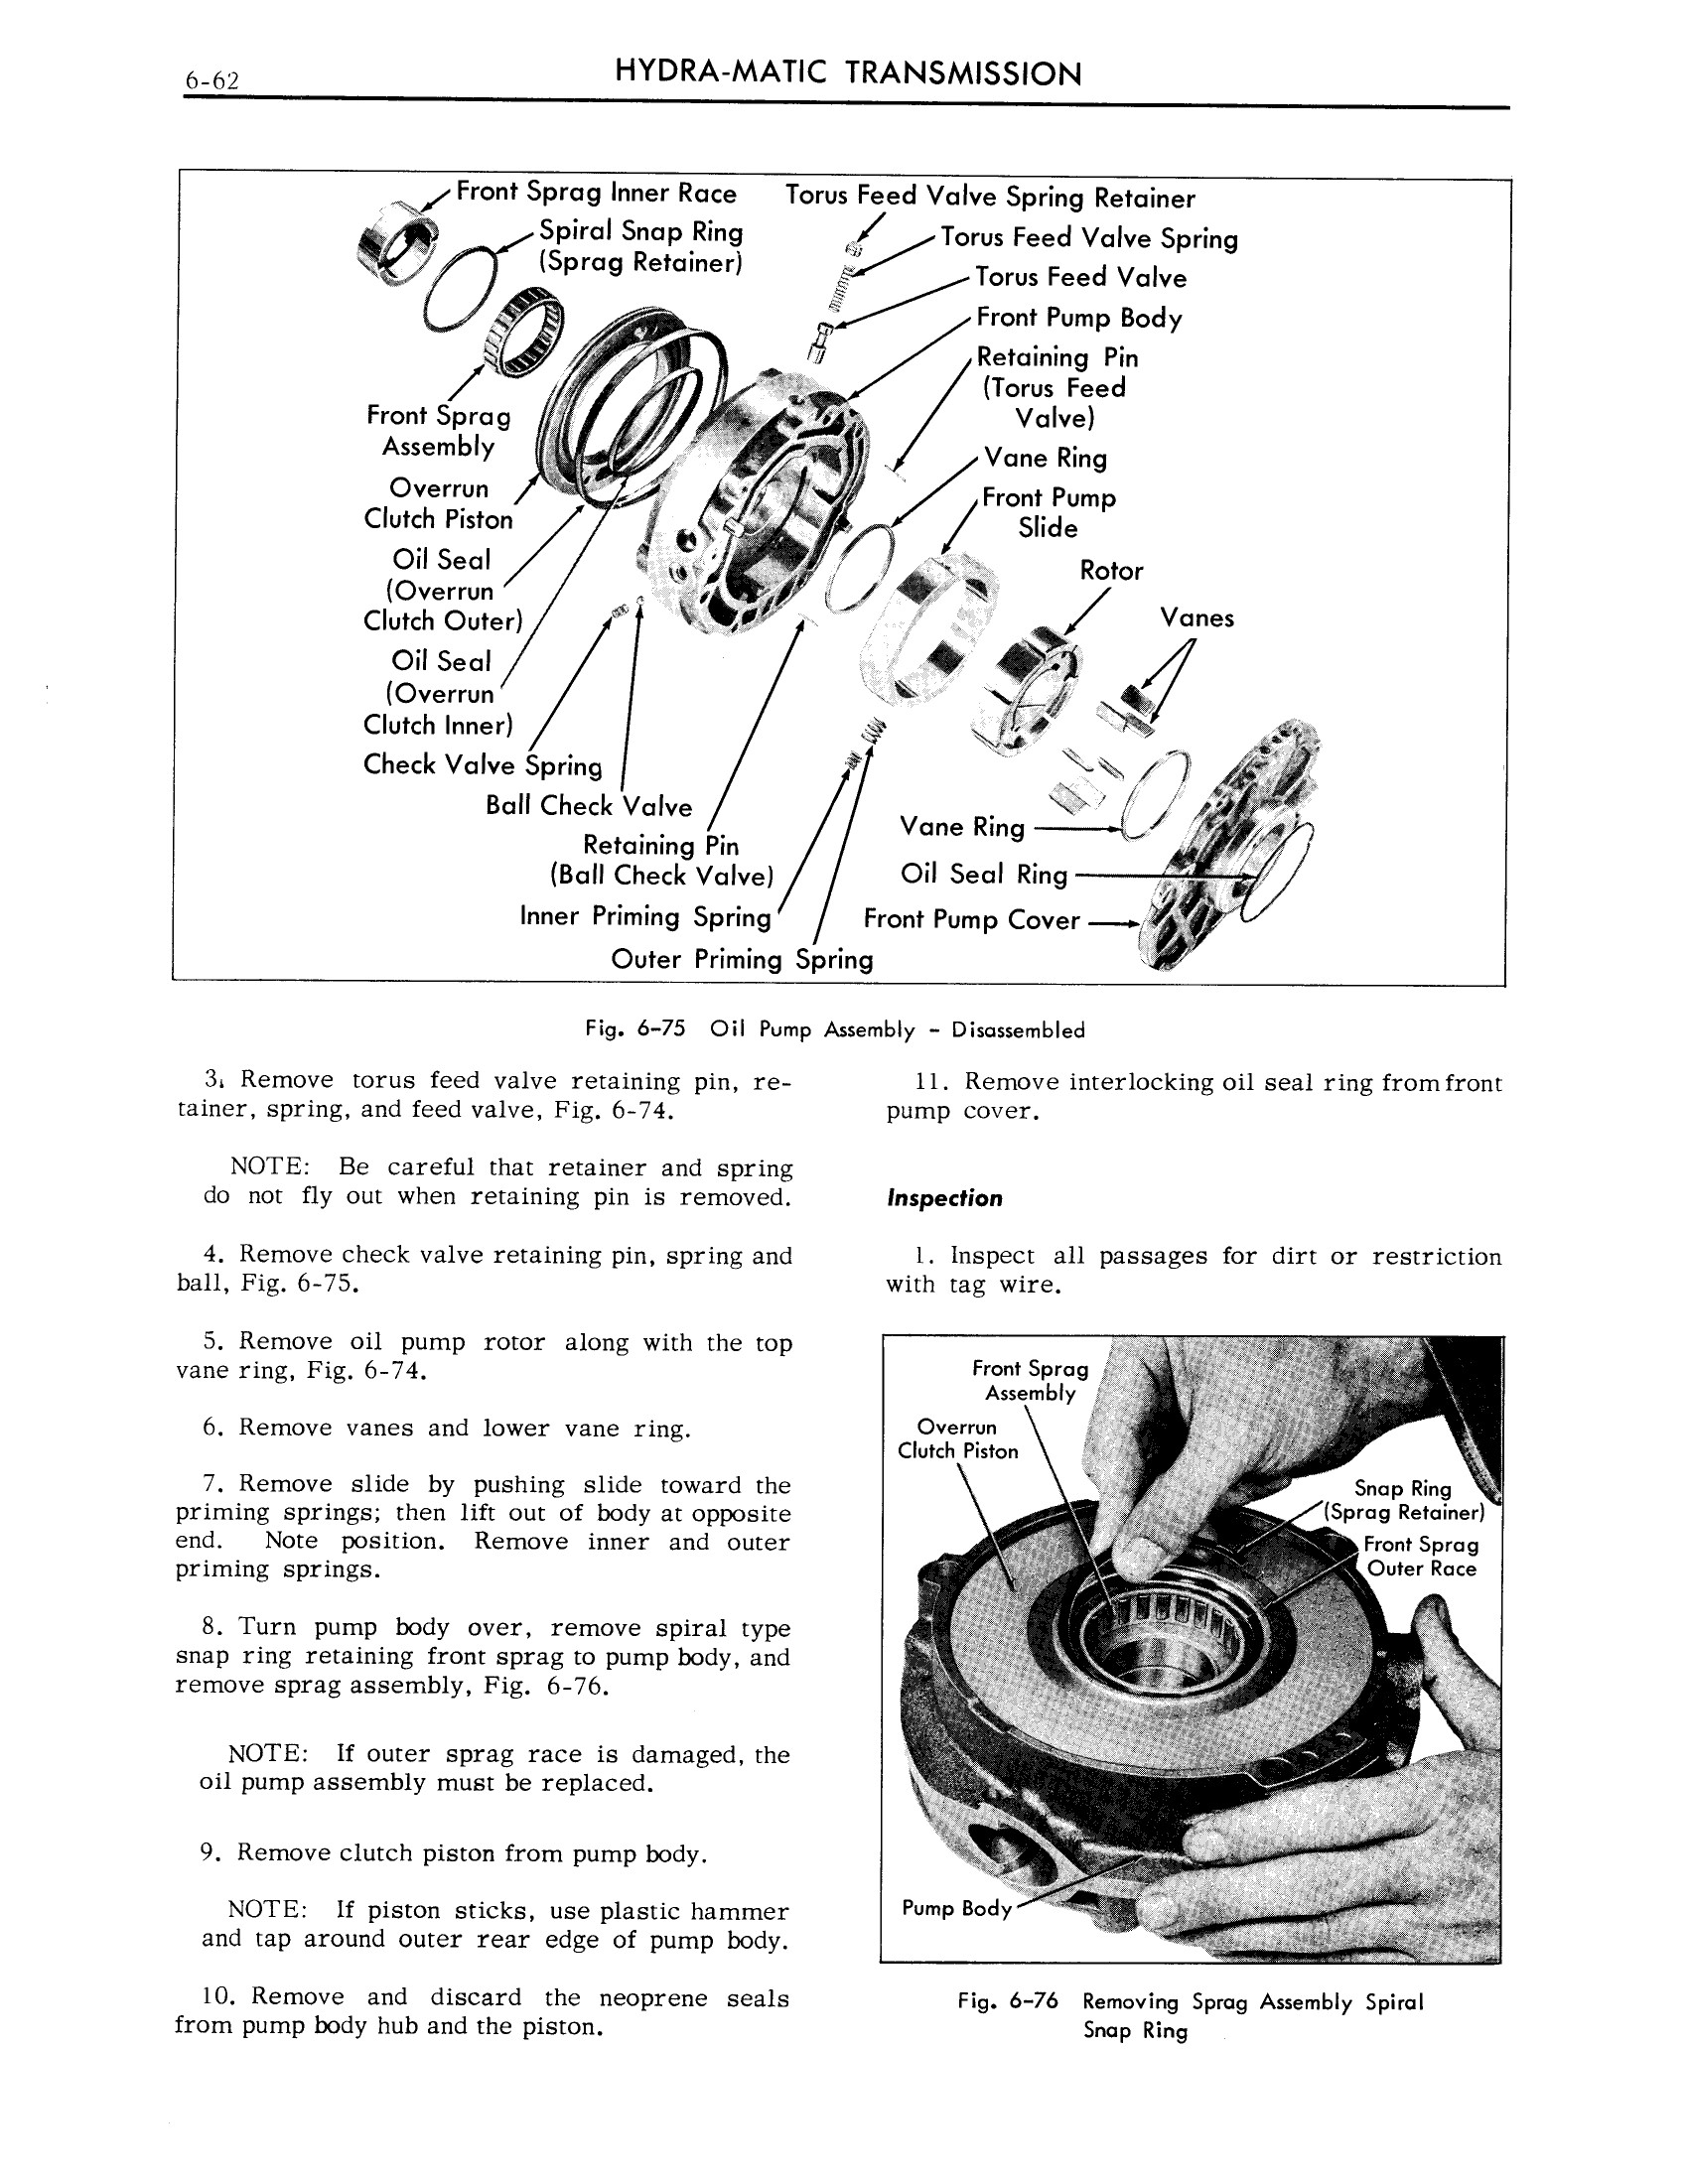 1959 Cadillac Shop Manual- Hydra-Matic Page 62 of 89